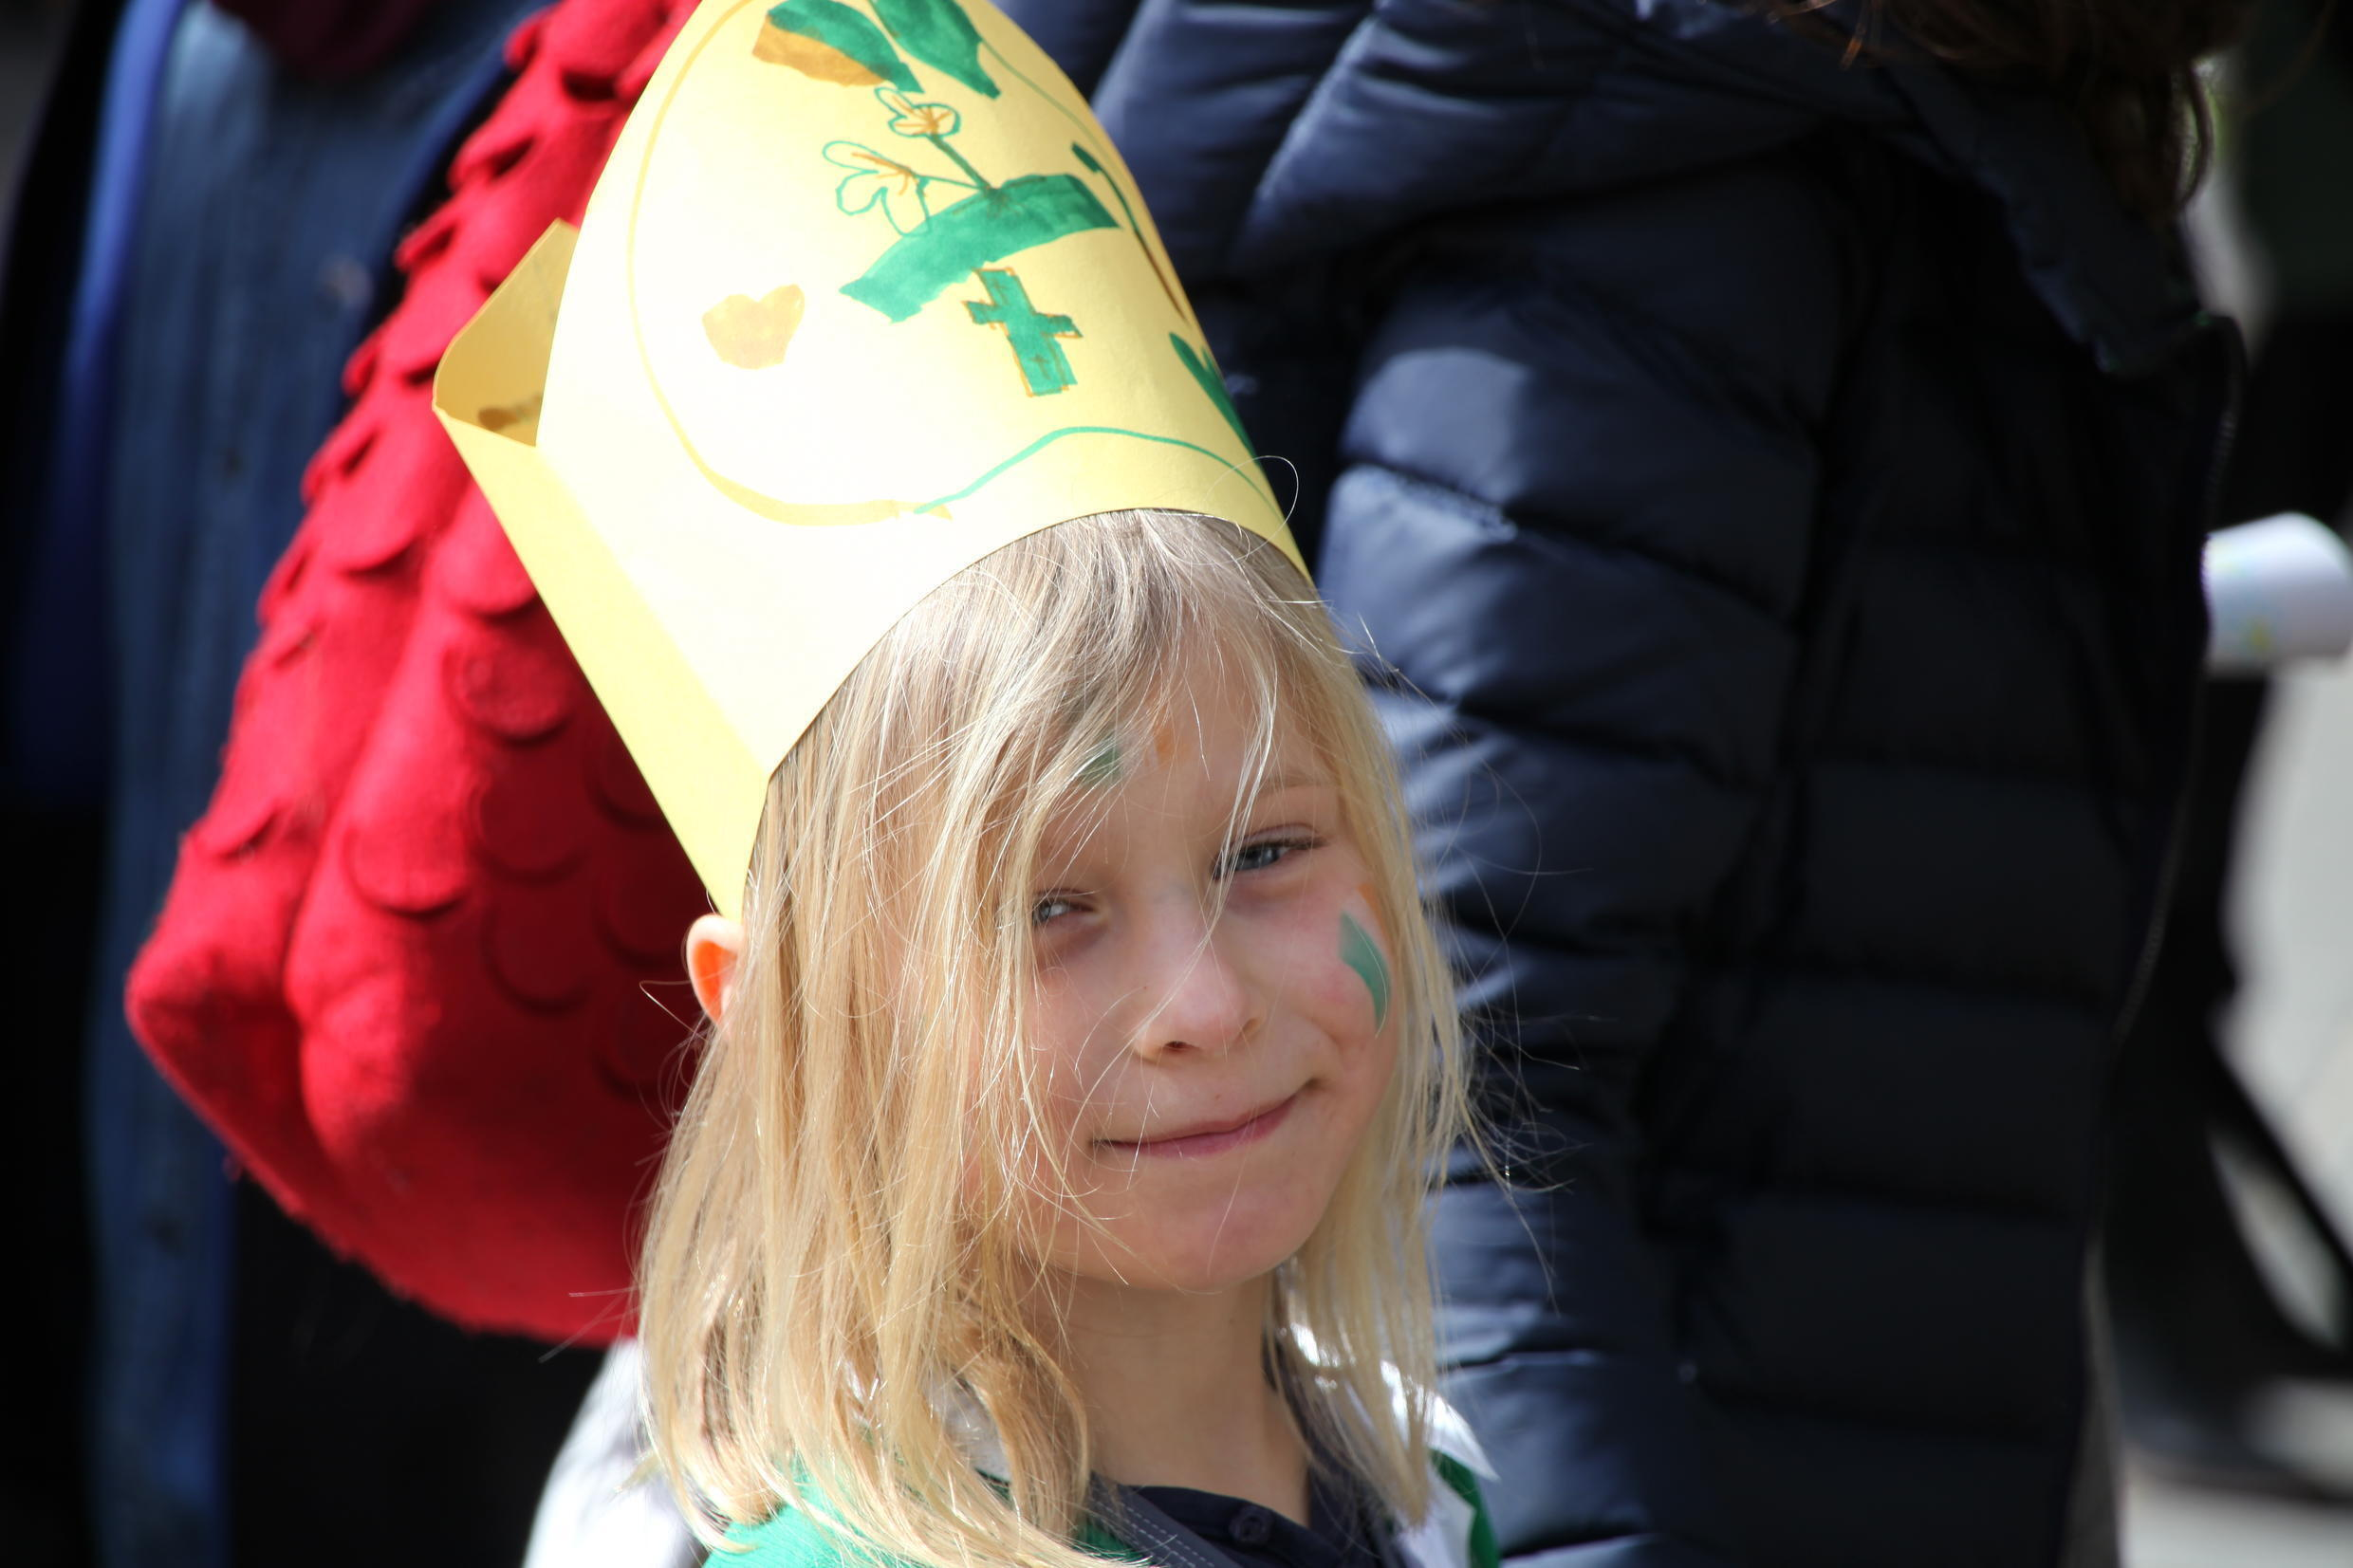 This girl is one of many children that took part in the festivities.